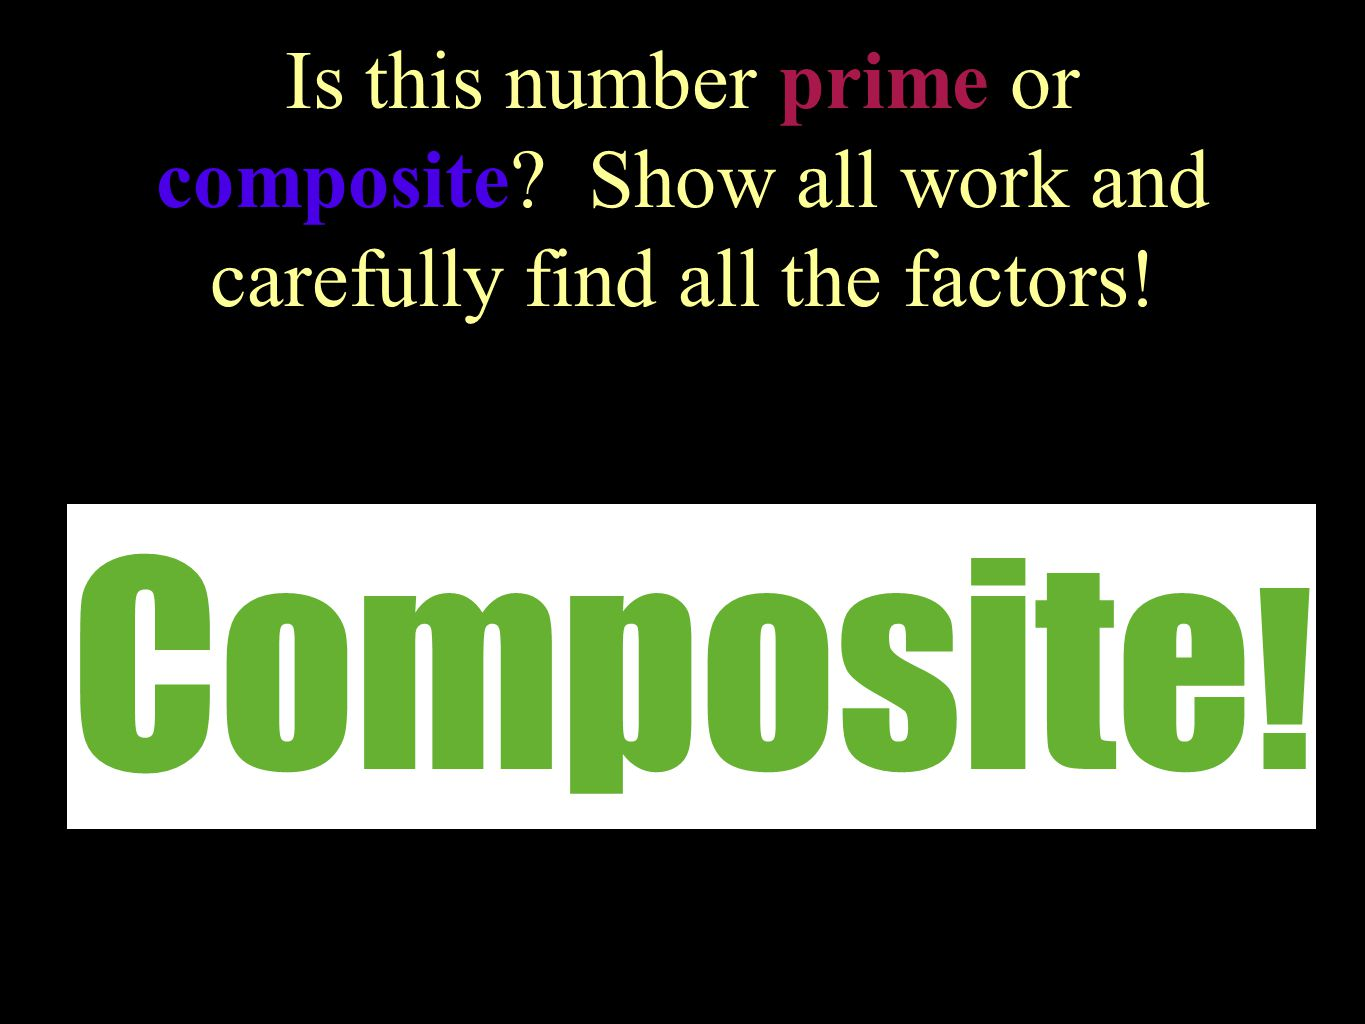 Is this number prime or composite? Show all work and carefully find all the factors! 17 Prime !